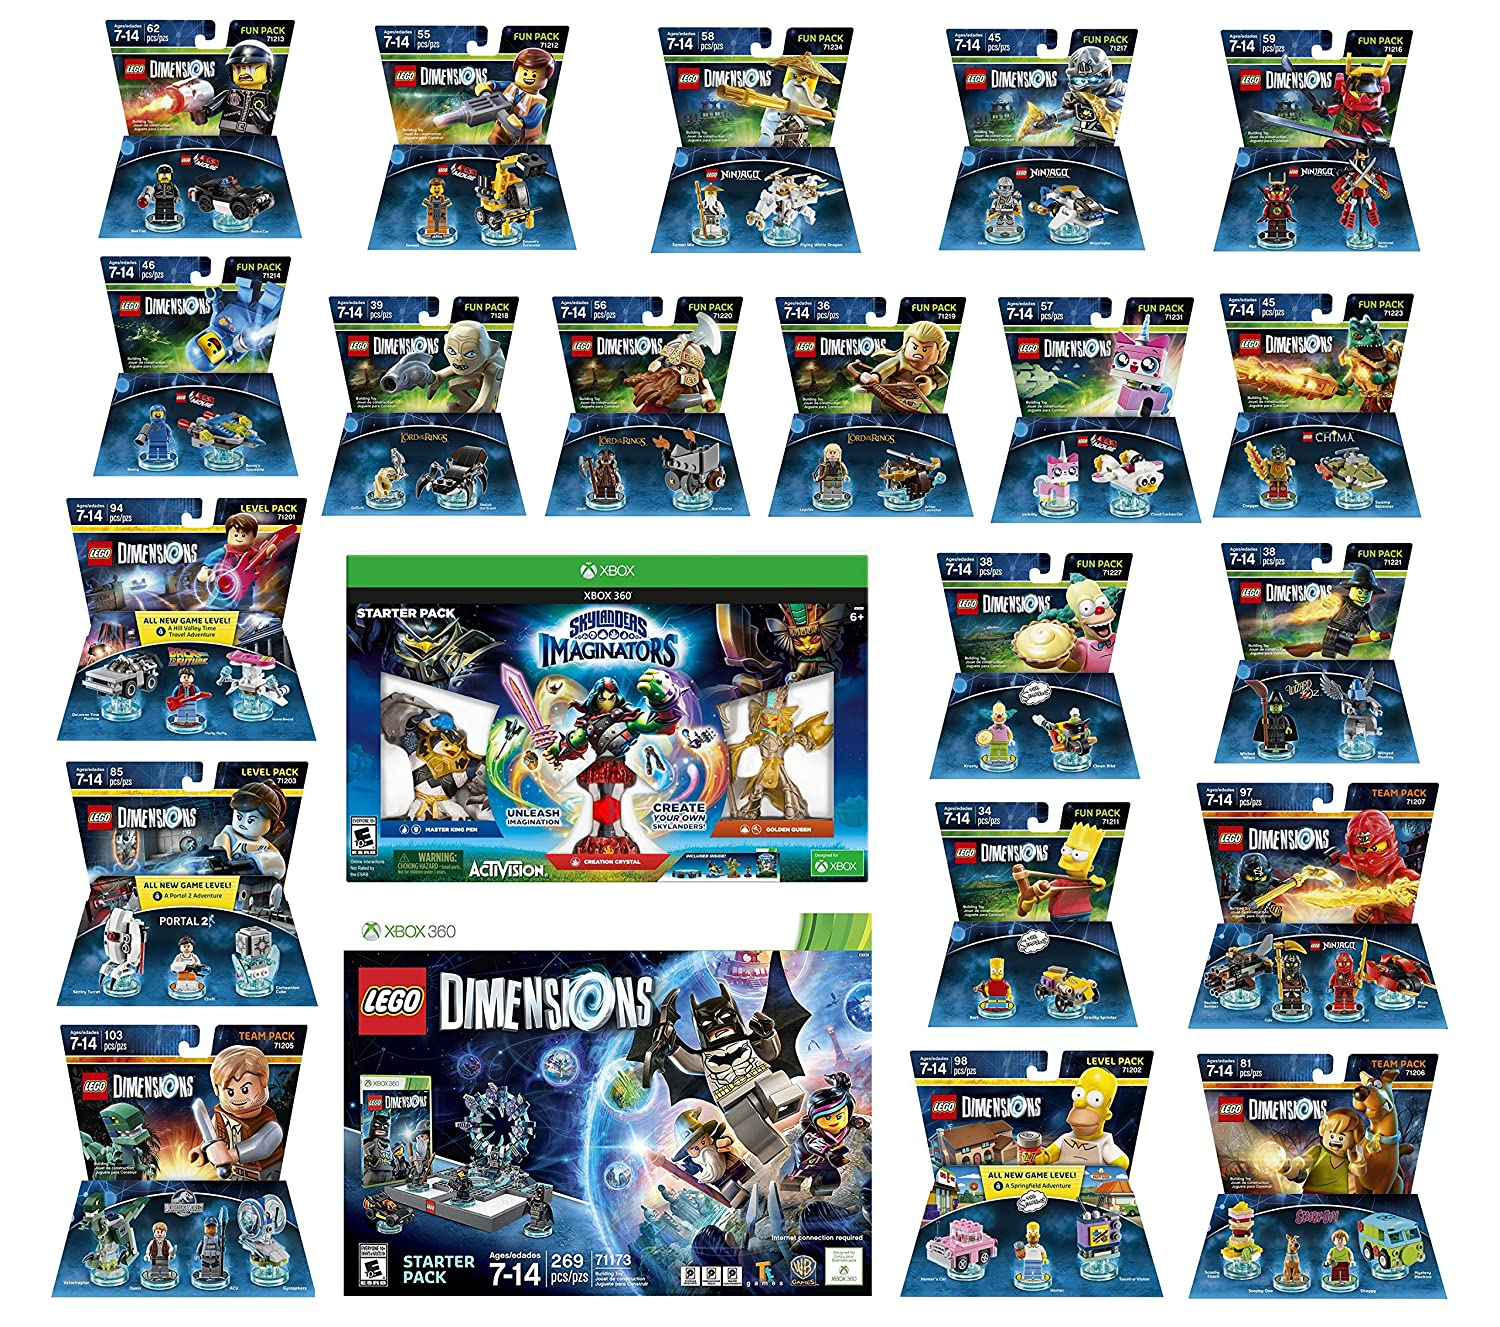 Amazon Com Skylanders Imaginators Starter Pack Lego Dimensions Starter Pack The Simpsons Homer Scooby Doo Portal 2 Jurassic World Back To The Future 14 Fun Packs Xbox 360 Console Video Games